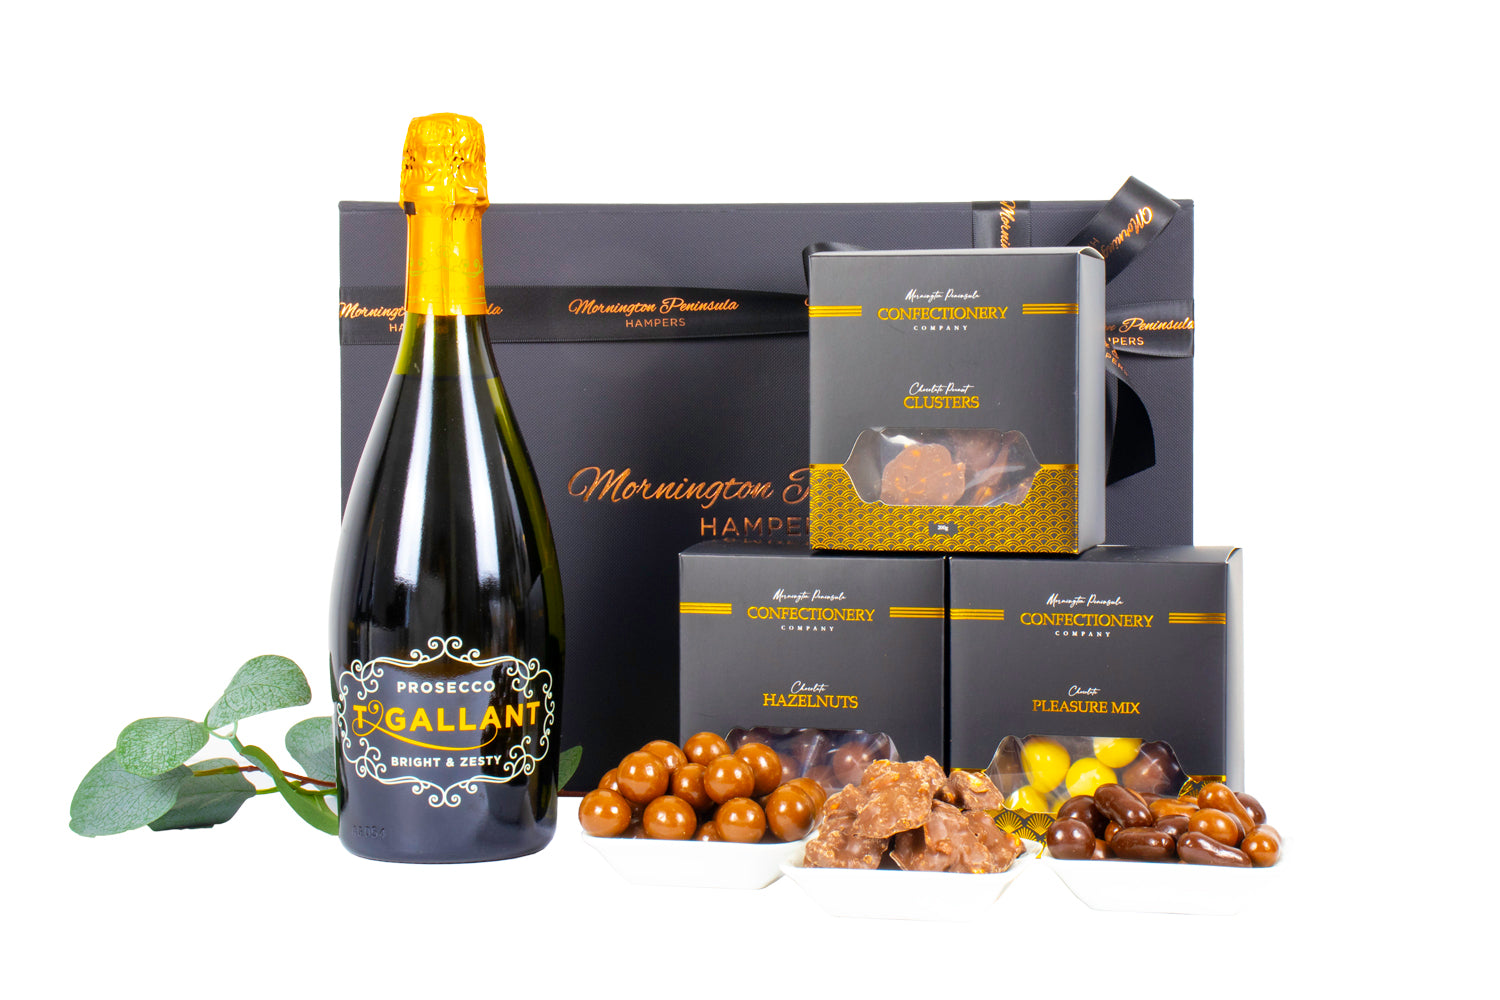 Prosecco Princess - Mornington Peninsula Hampers